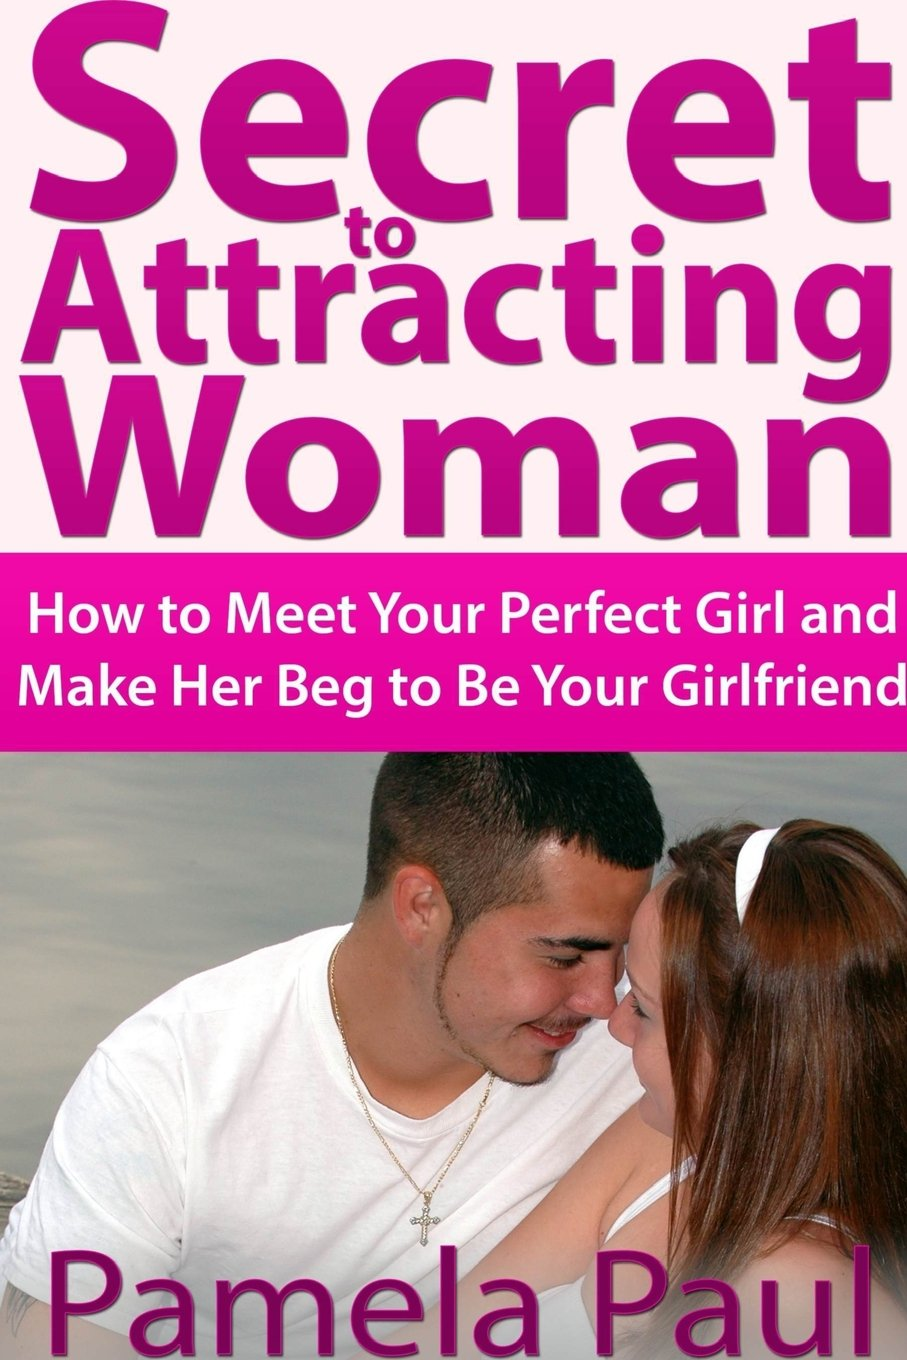 How to get the perfect girlfriend